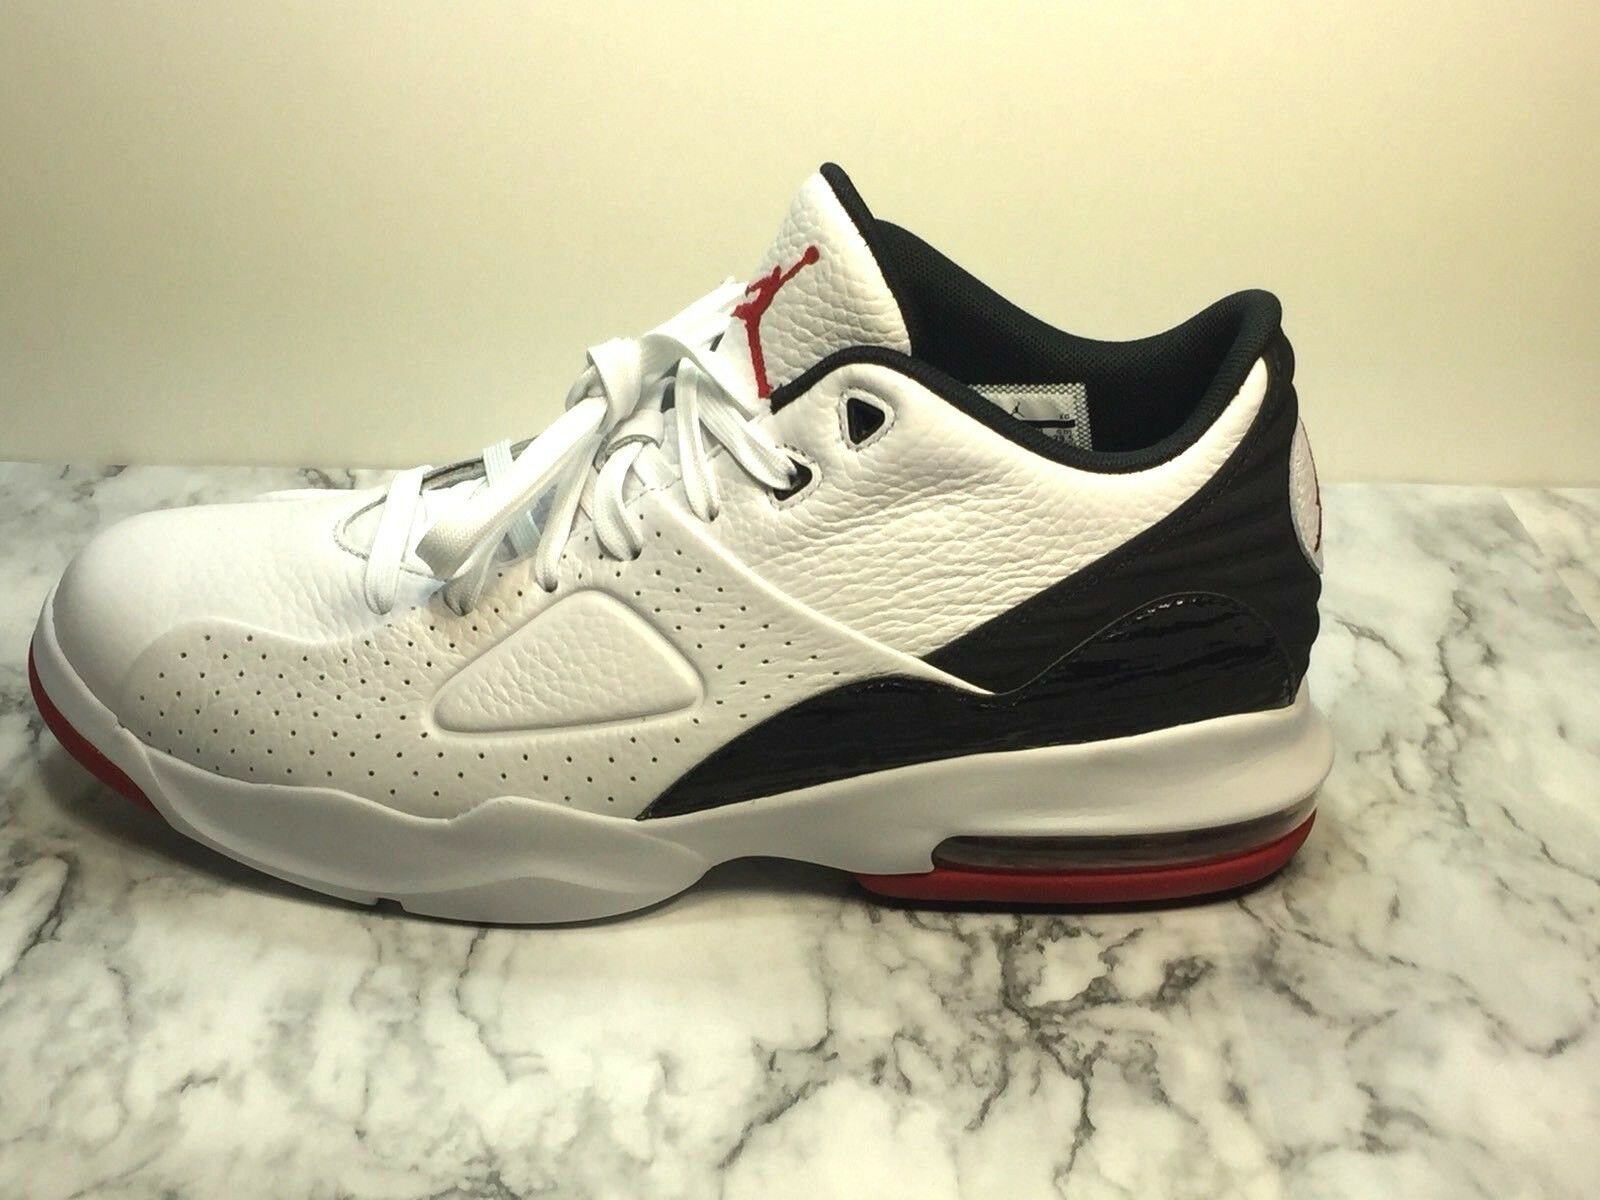 Nike Air Jordan Franchise 881472-101 Men's Sneakers white black red size 11.5